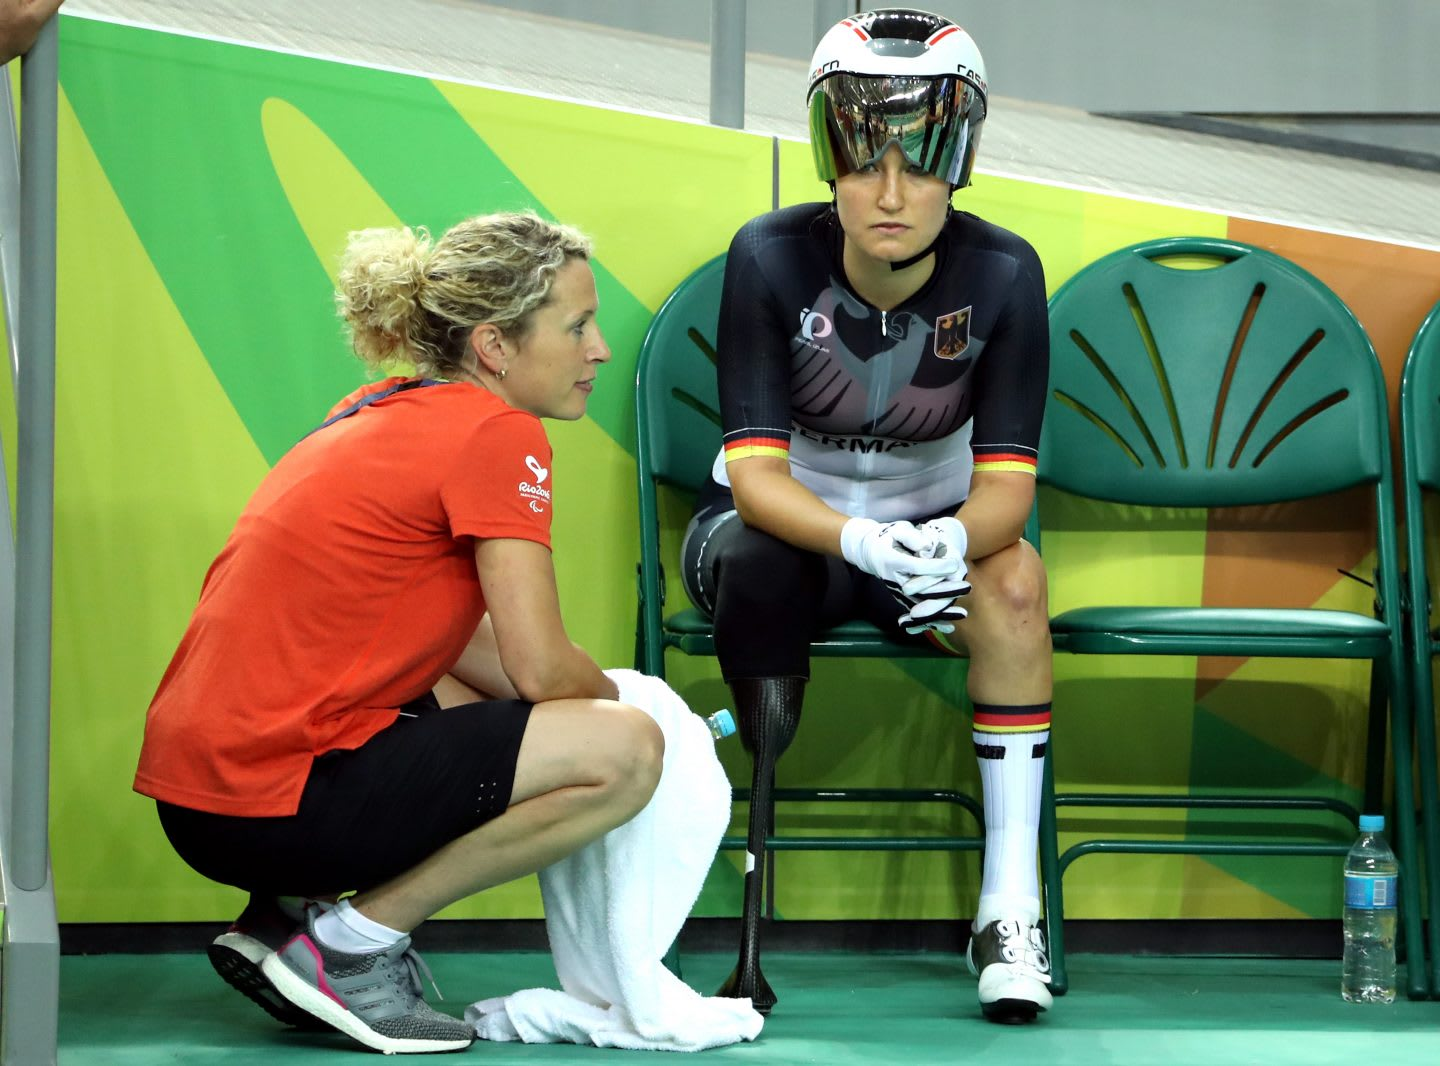 Denise Schindler resting during 2016 Paralympic Games in Rio De Janeiro, Brazil, para-cyclist, paralympian, paralympics, motivation, inspiration, GamePlan A